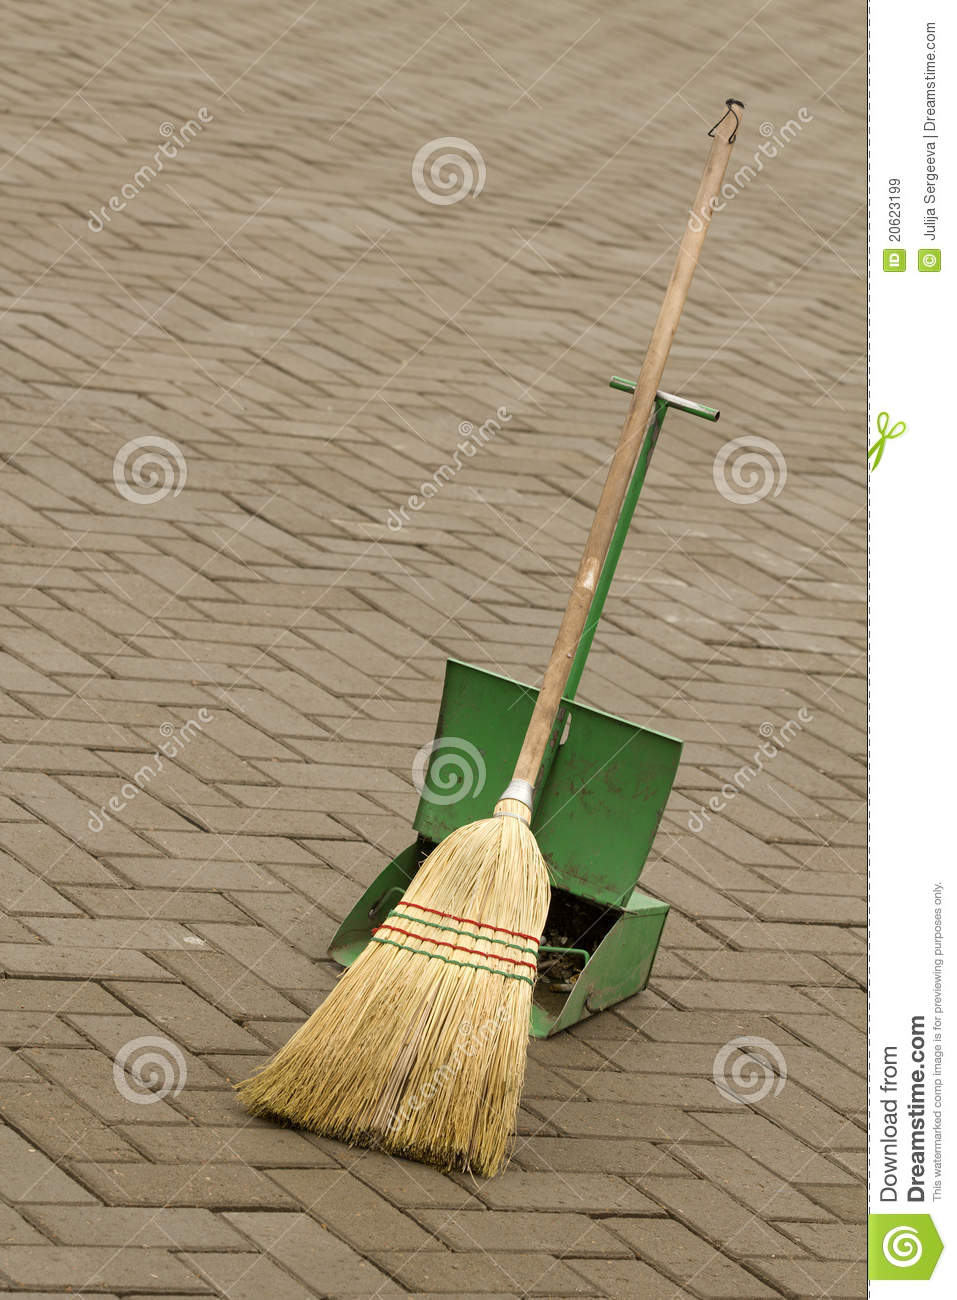 Broom Tool Cleaning Equipment Stock Image Image Of